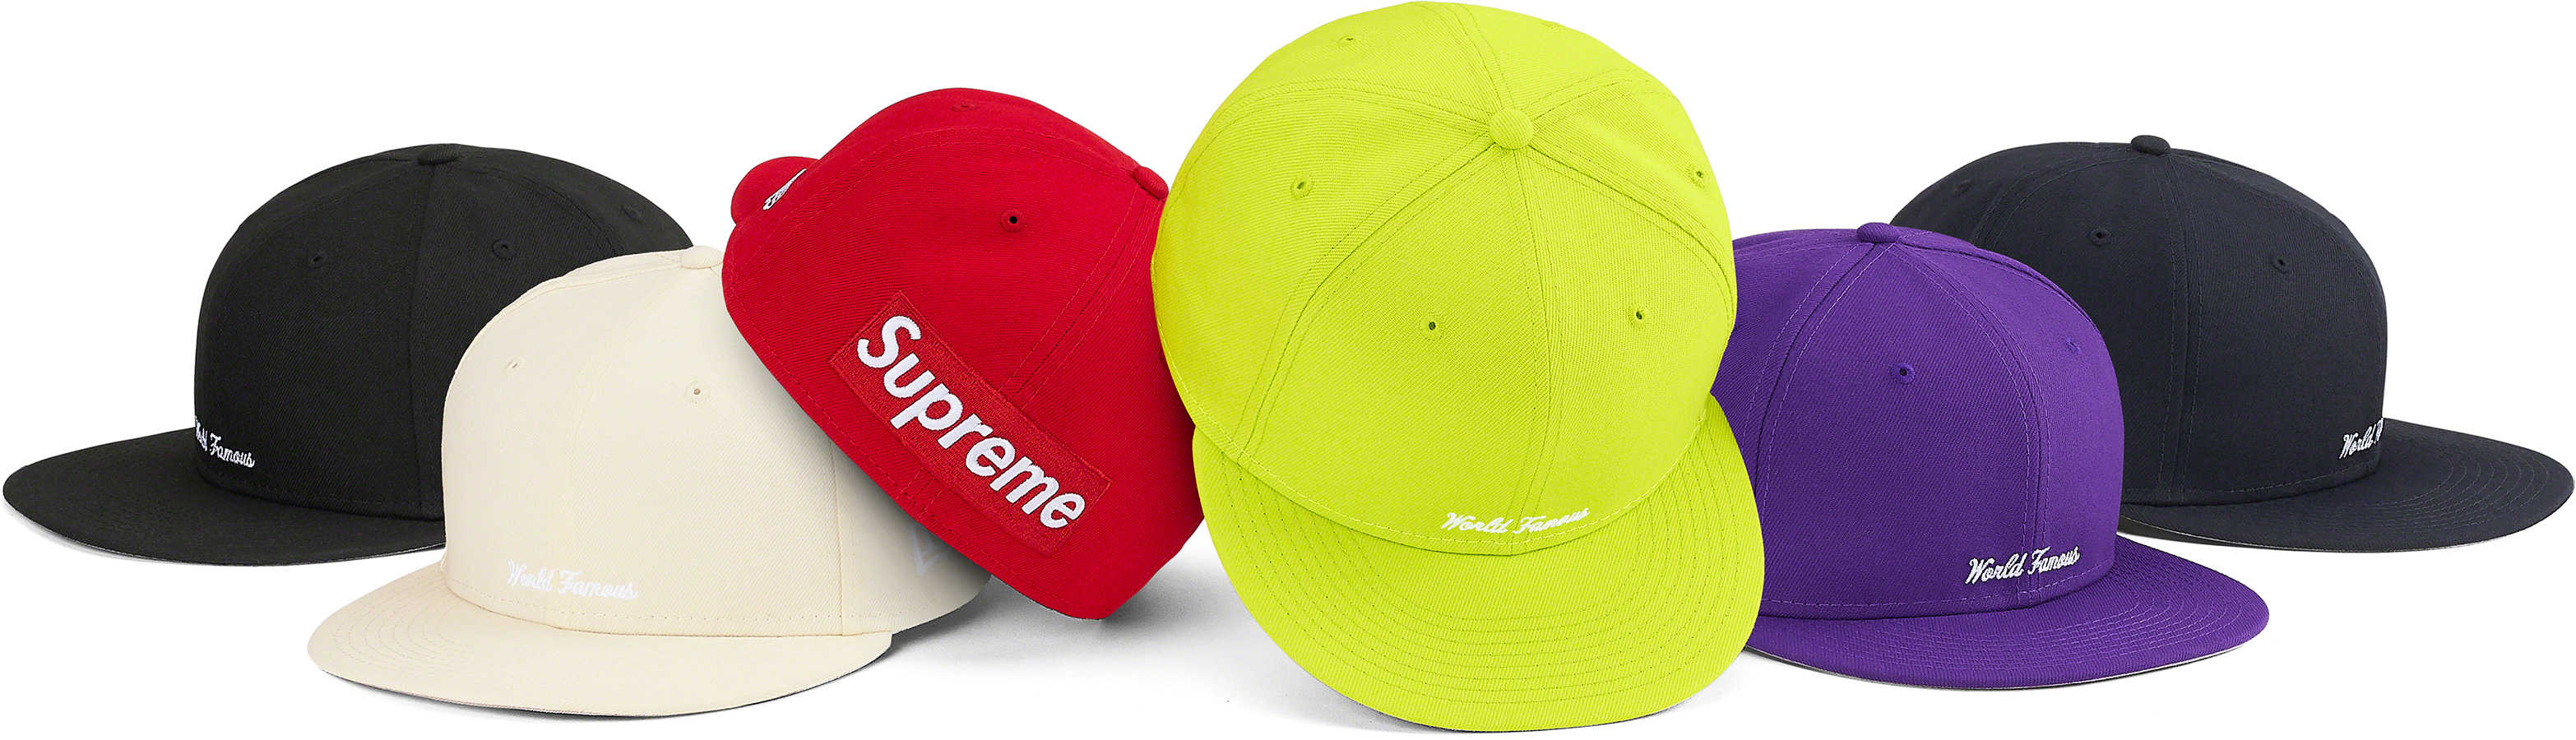 supreme-21ss-spring-summer-reverse-box-logo-new-era